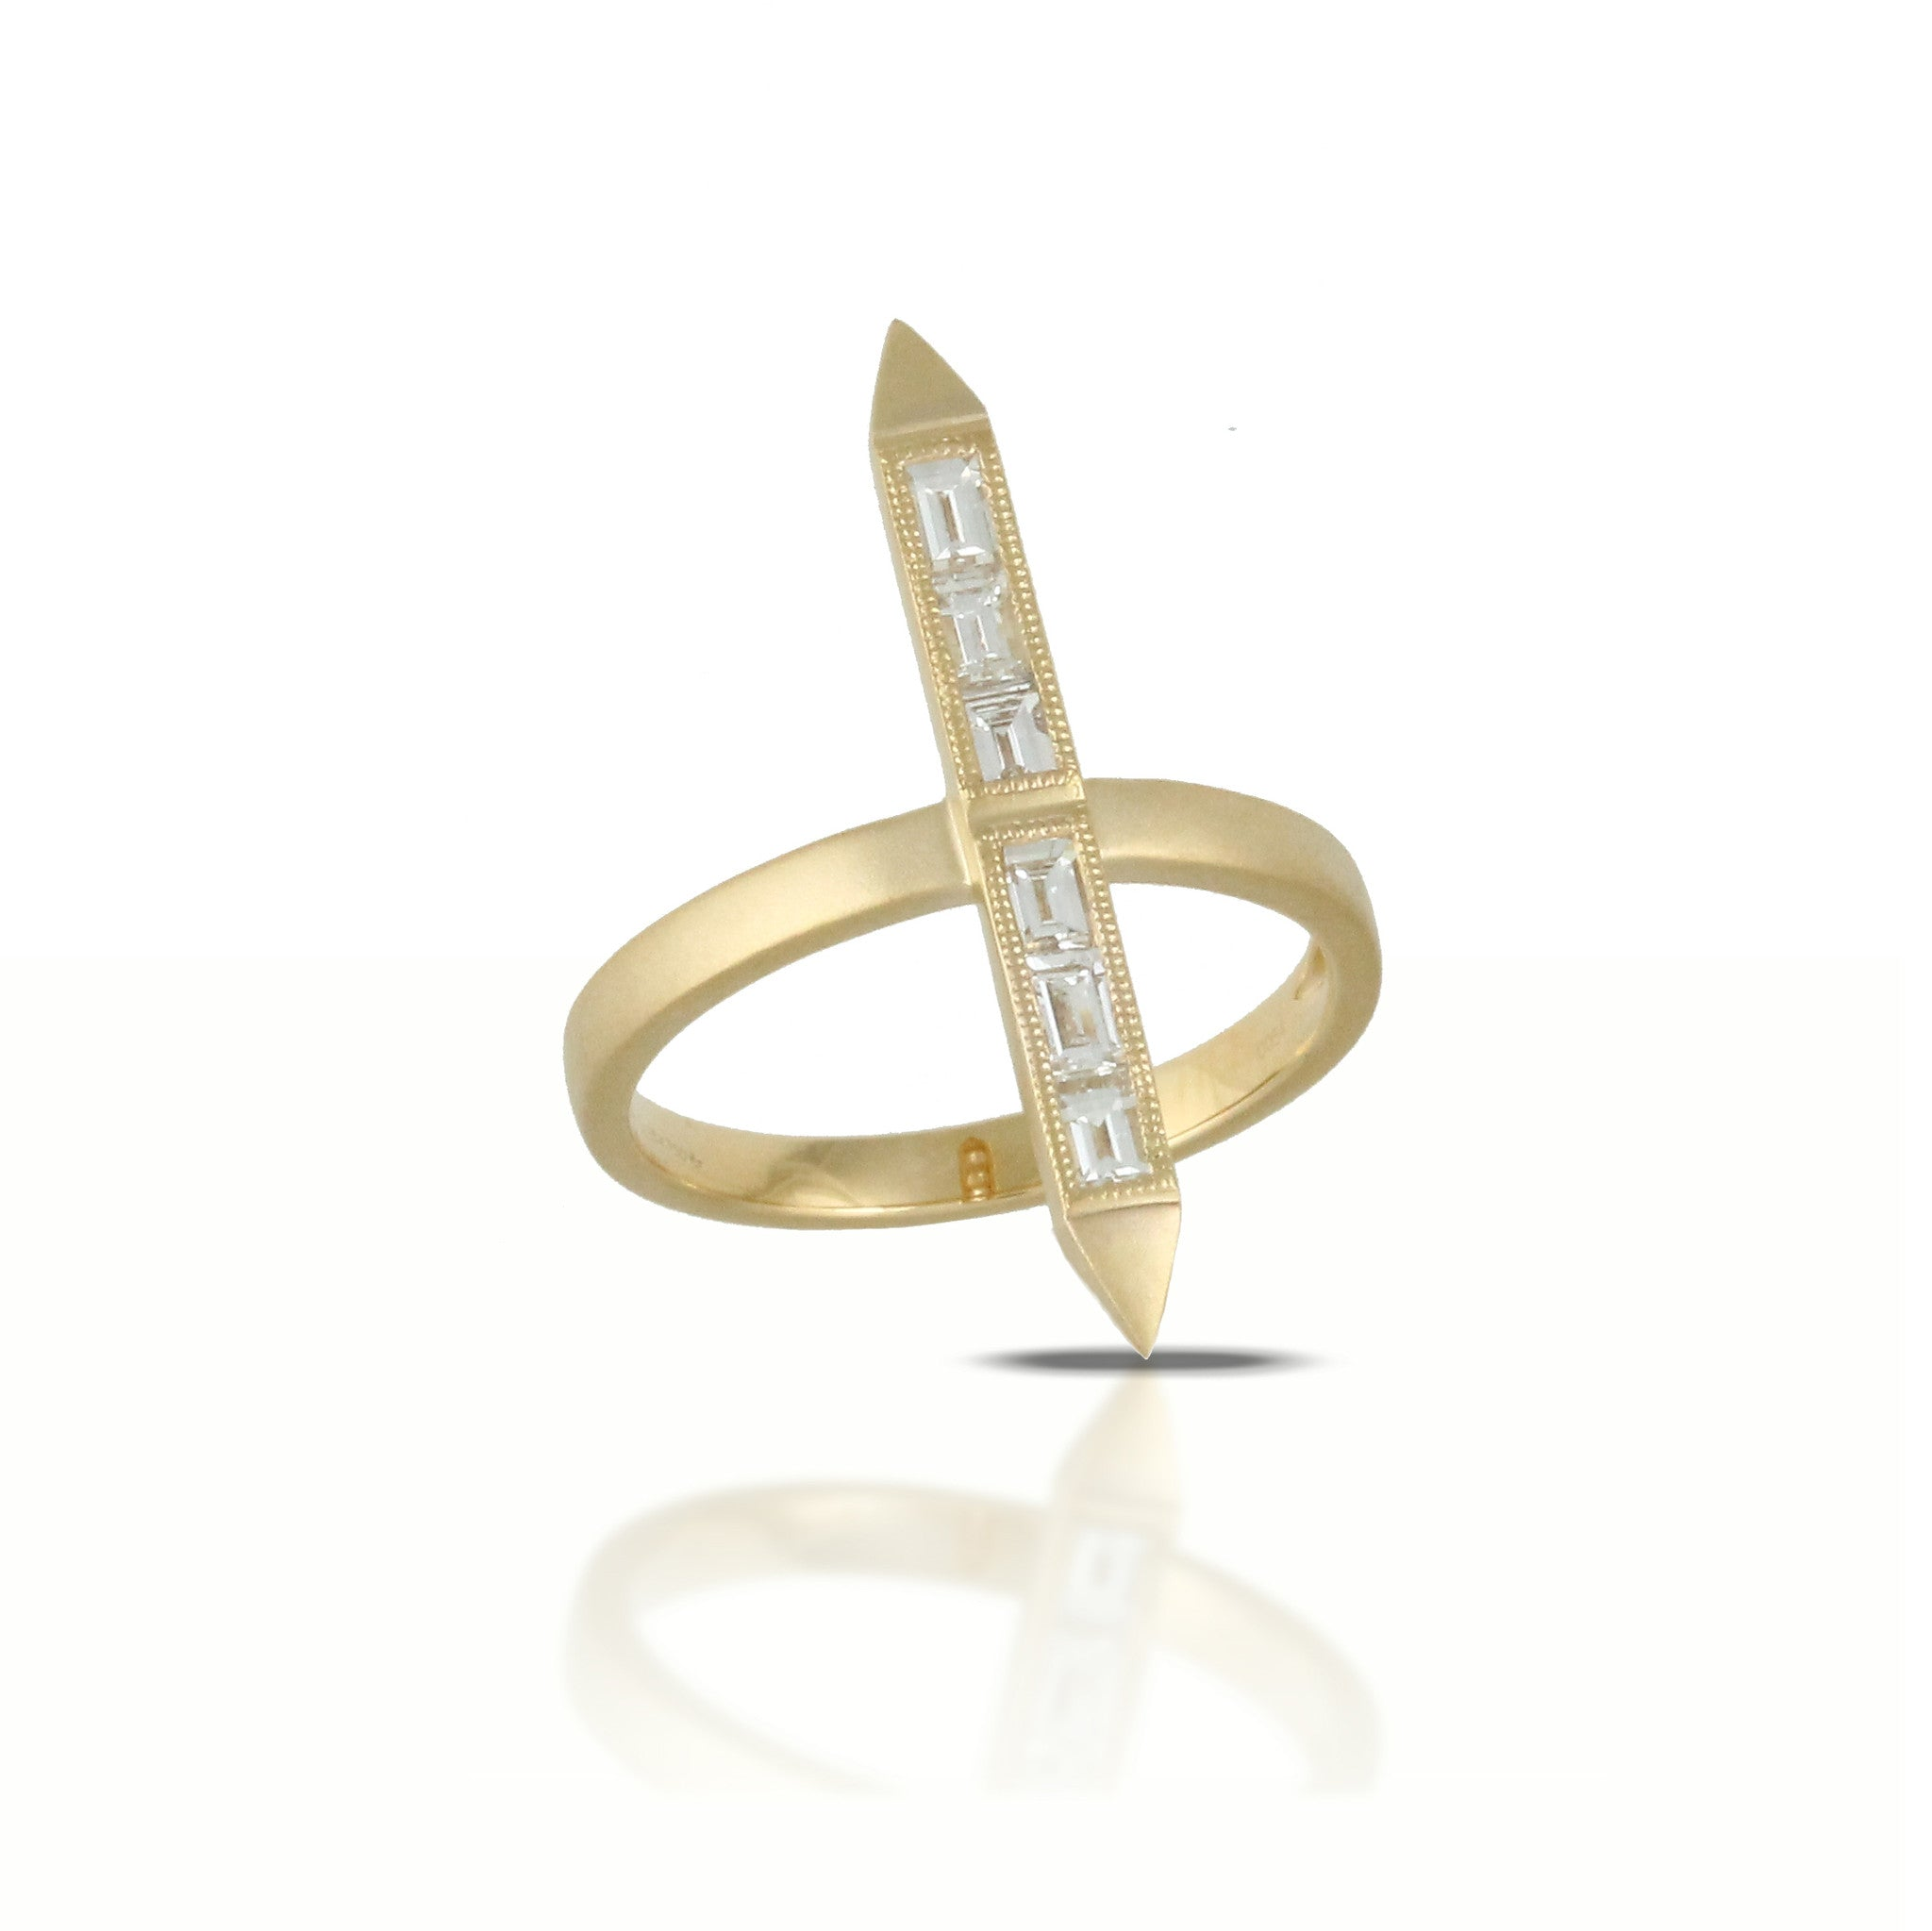 Doves 18k Yellow Gold Diamond Art Deco Geometric Ring by Jewelry Designer Doron Paloma